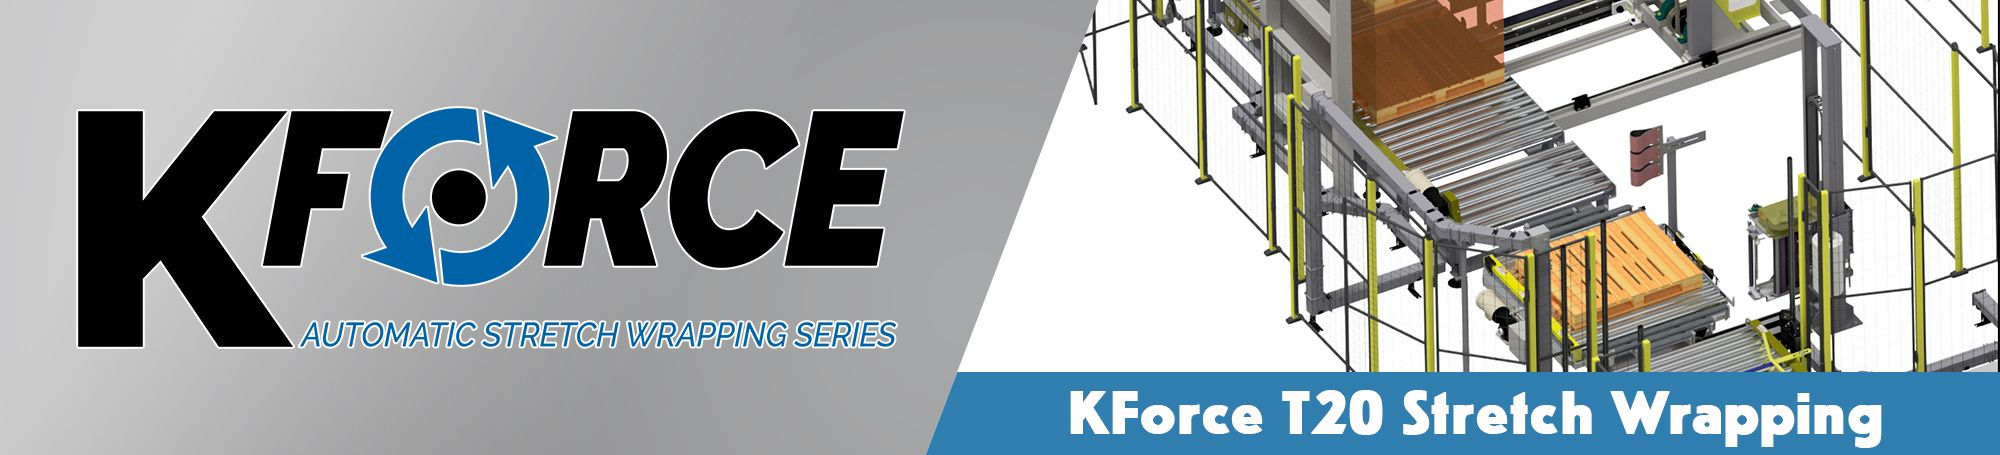 kforce t20 wrapper.jpg.